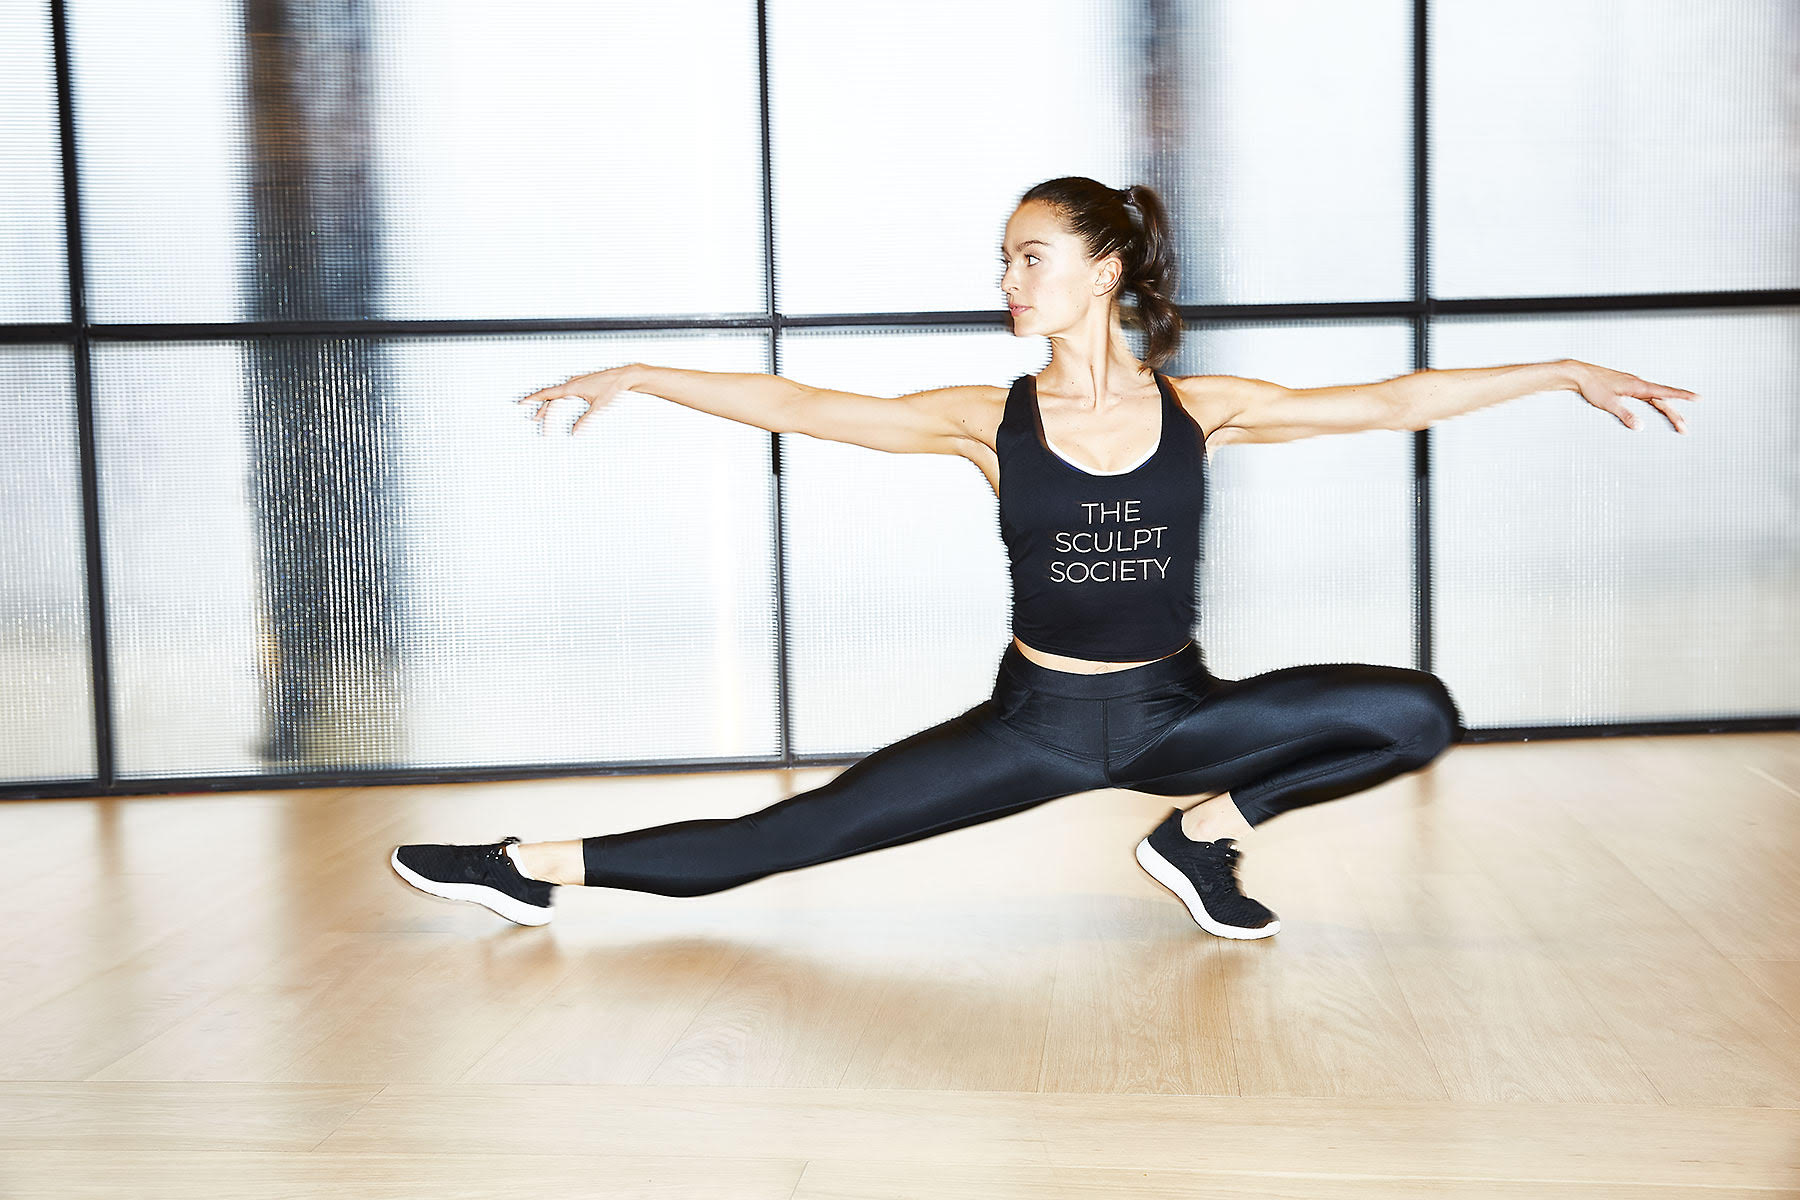 The Sculpt Society, - an athletic approach to dance based fitness